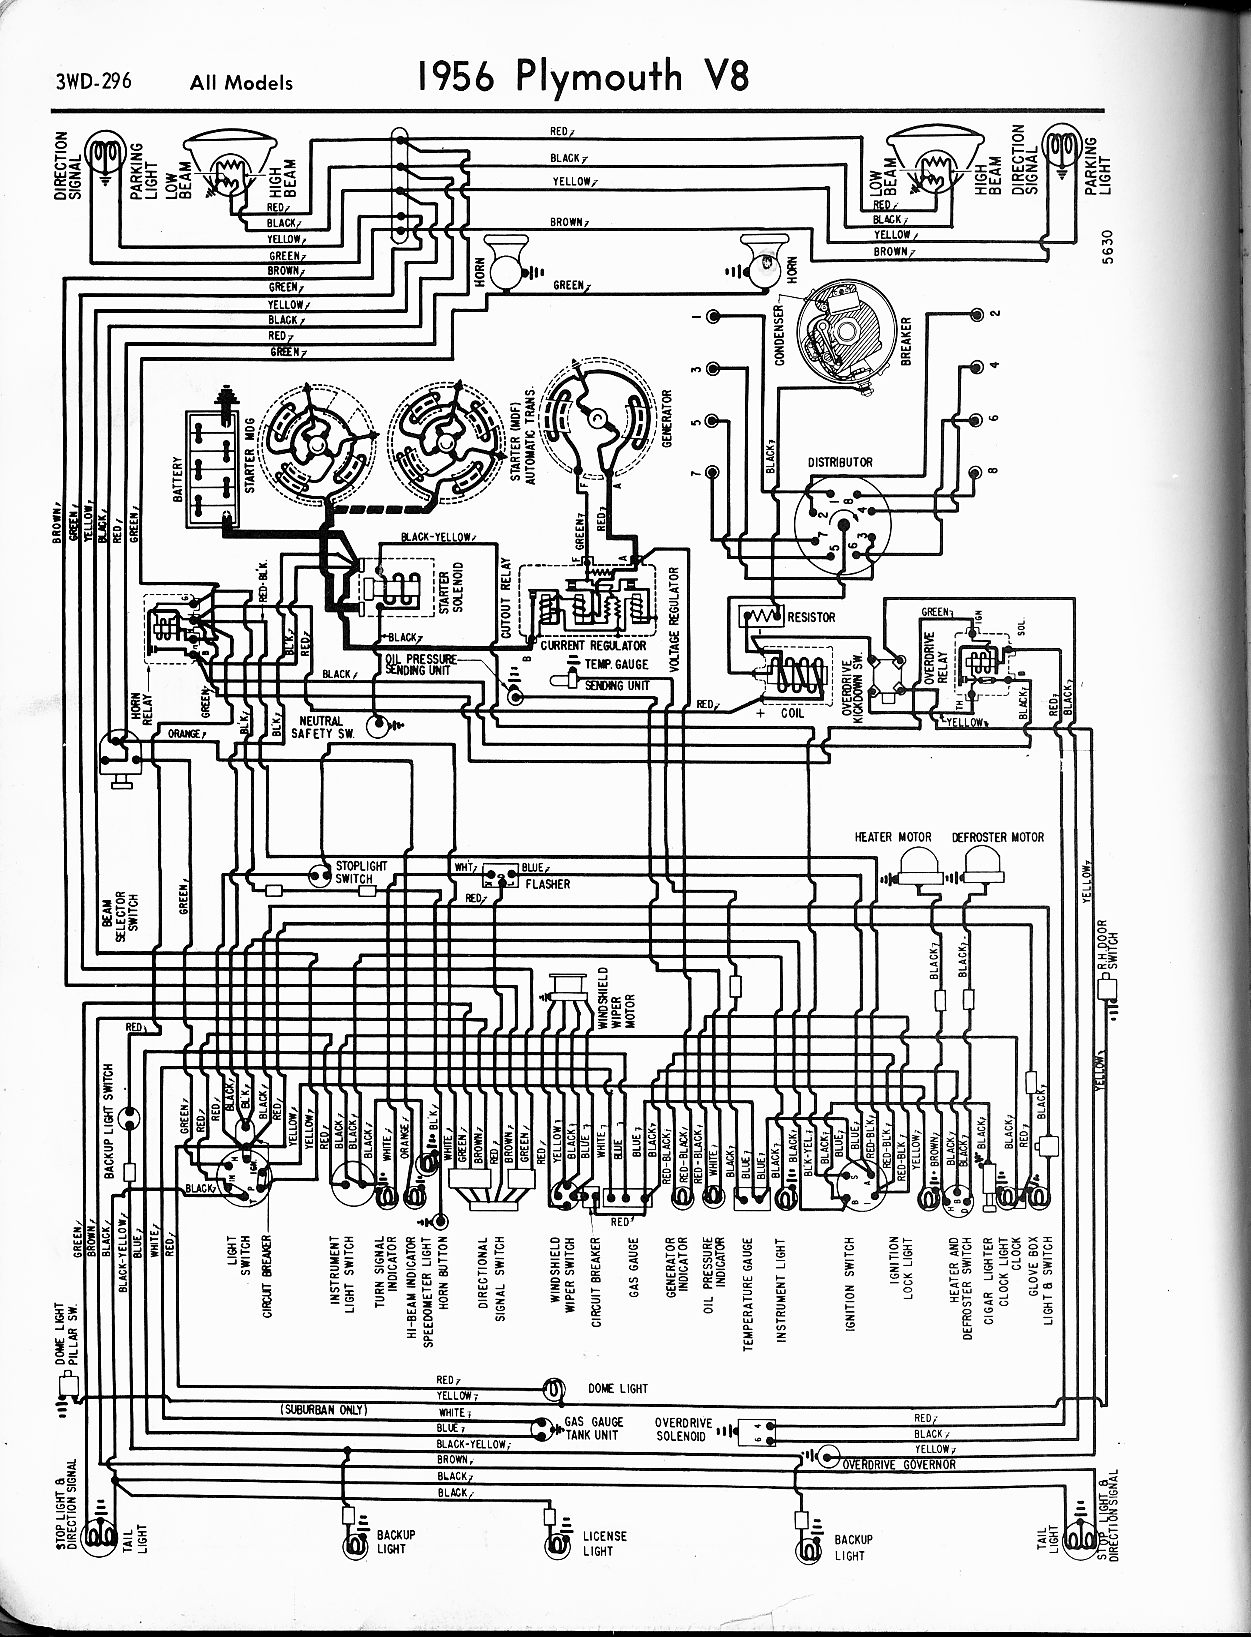 Plymouth Wiring Diagrams Just Another Data 1956 Willys Truck Diagram 1965 The Old Car Manual Project Hobart Hcm 450